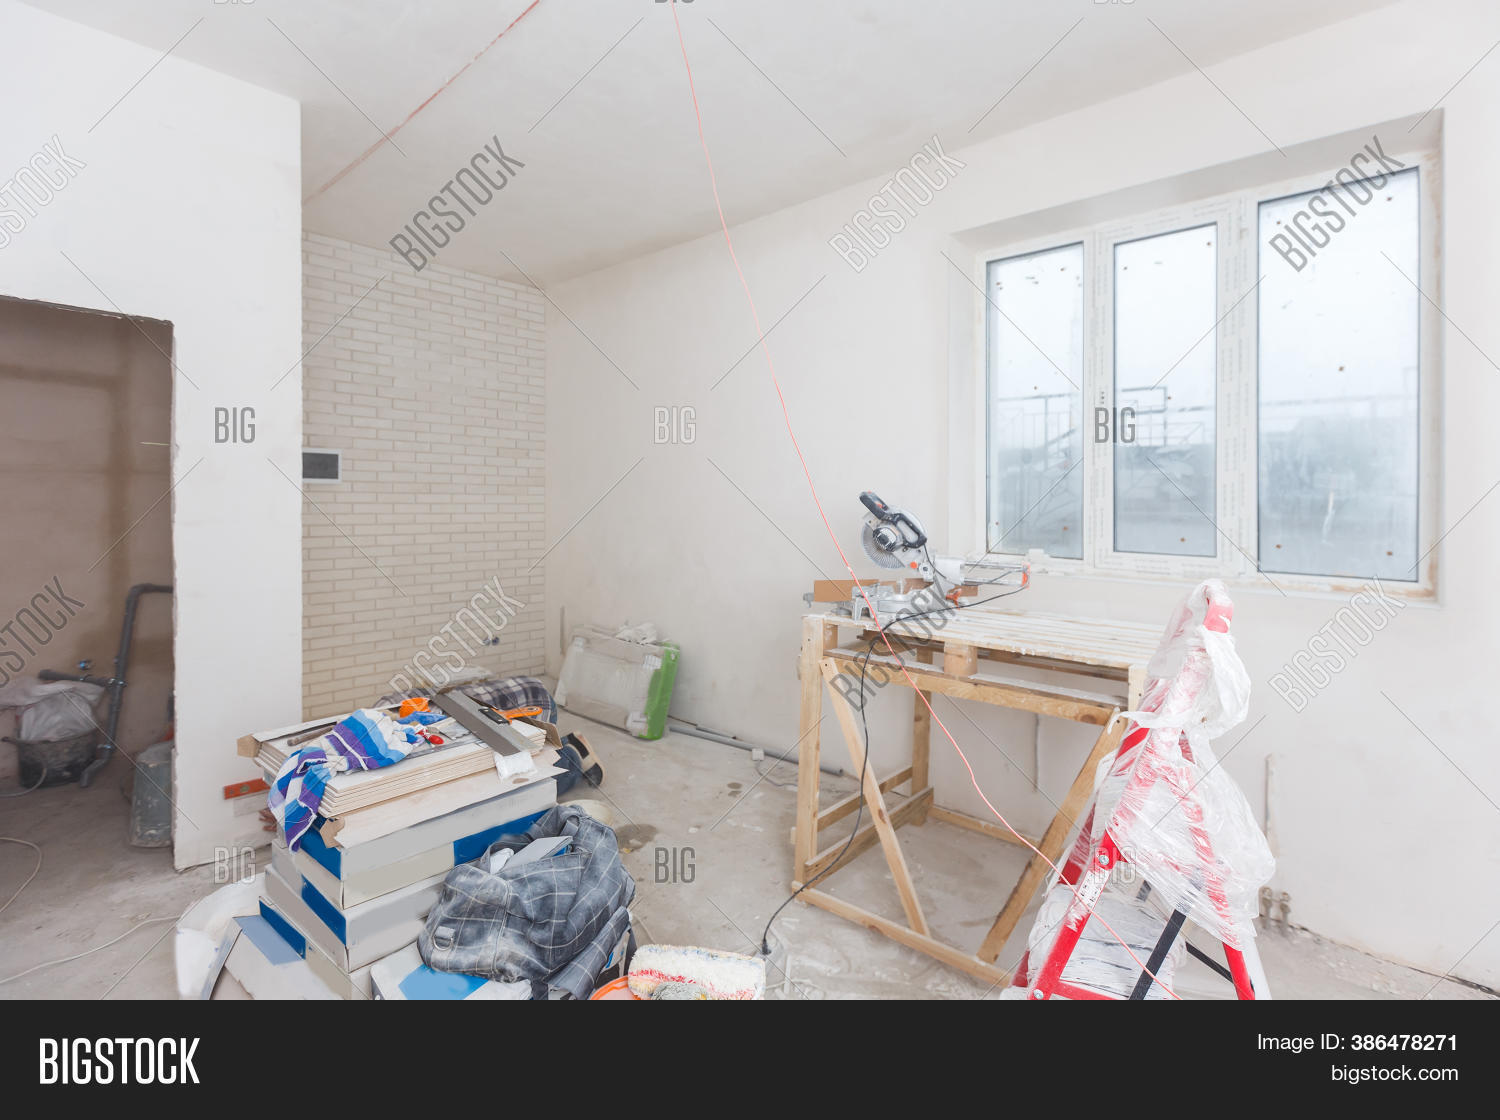 Remodeling Attic Image Photo Free Trial Bigstock